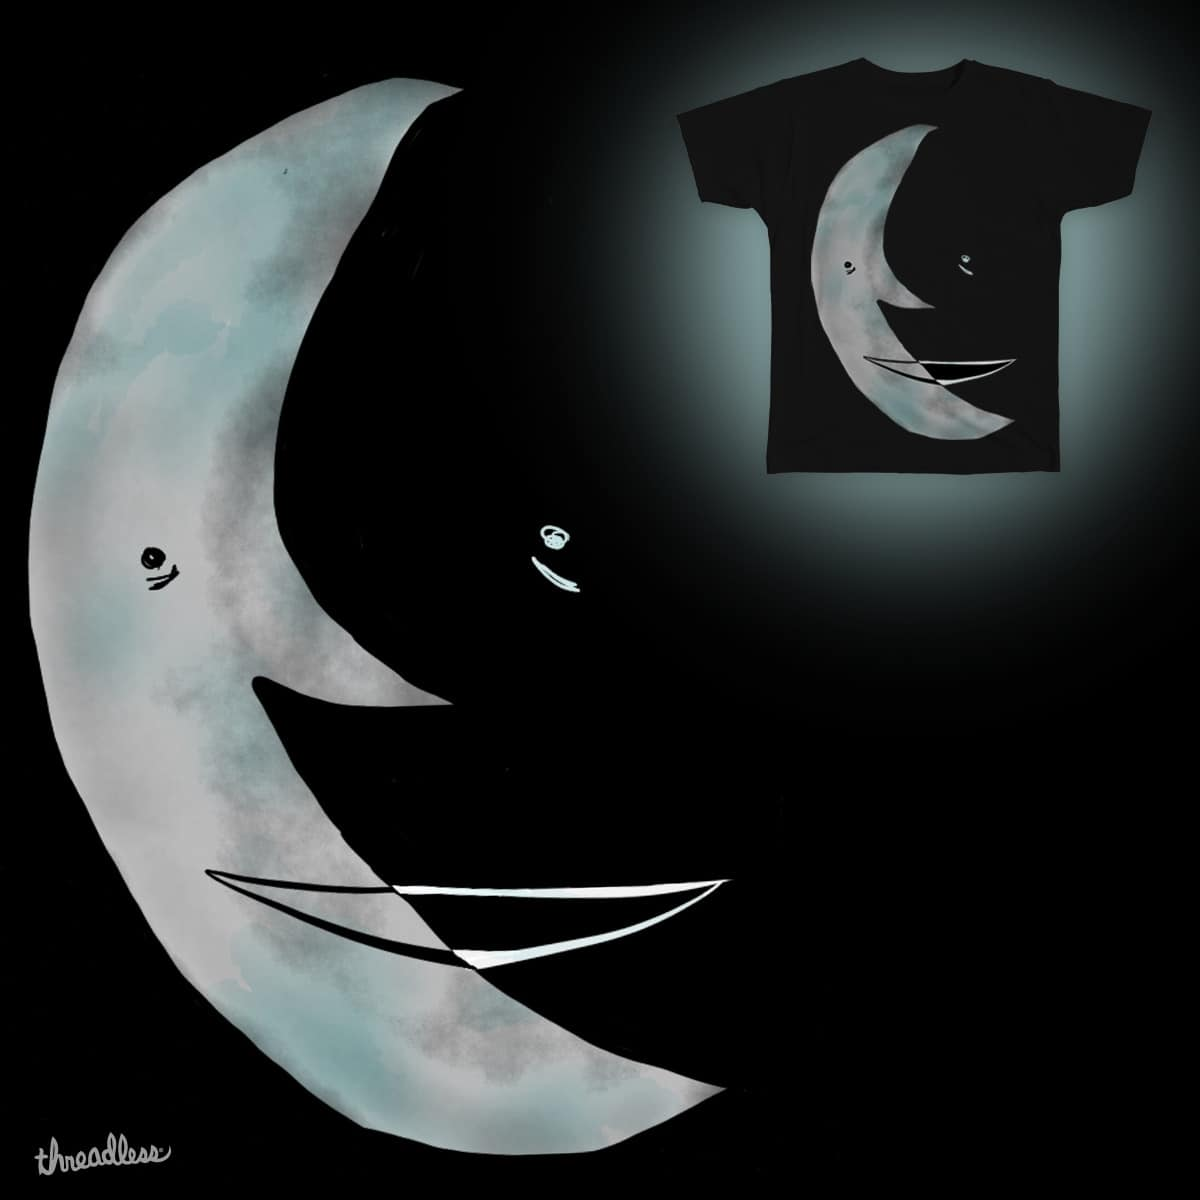 Sides of the Moon by teetys on Threadless